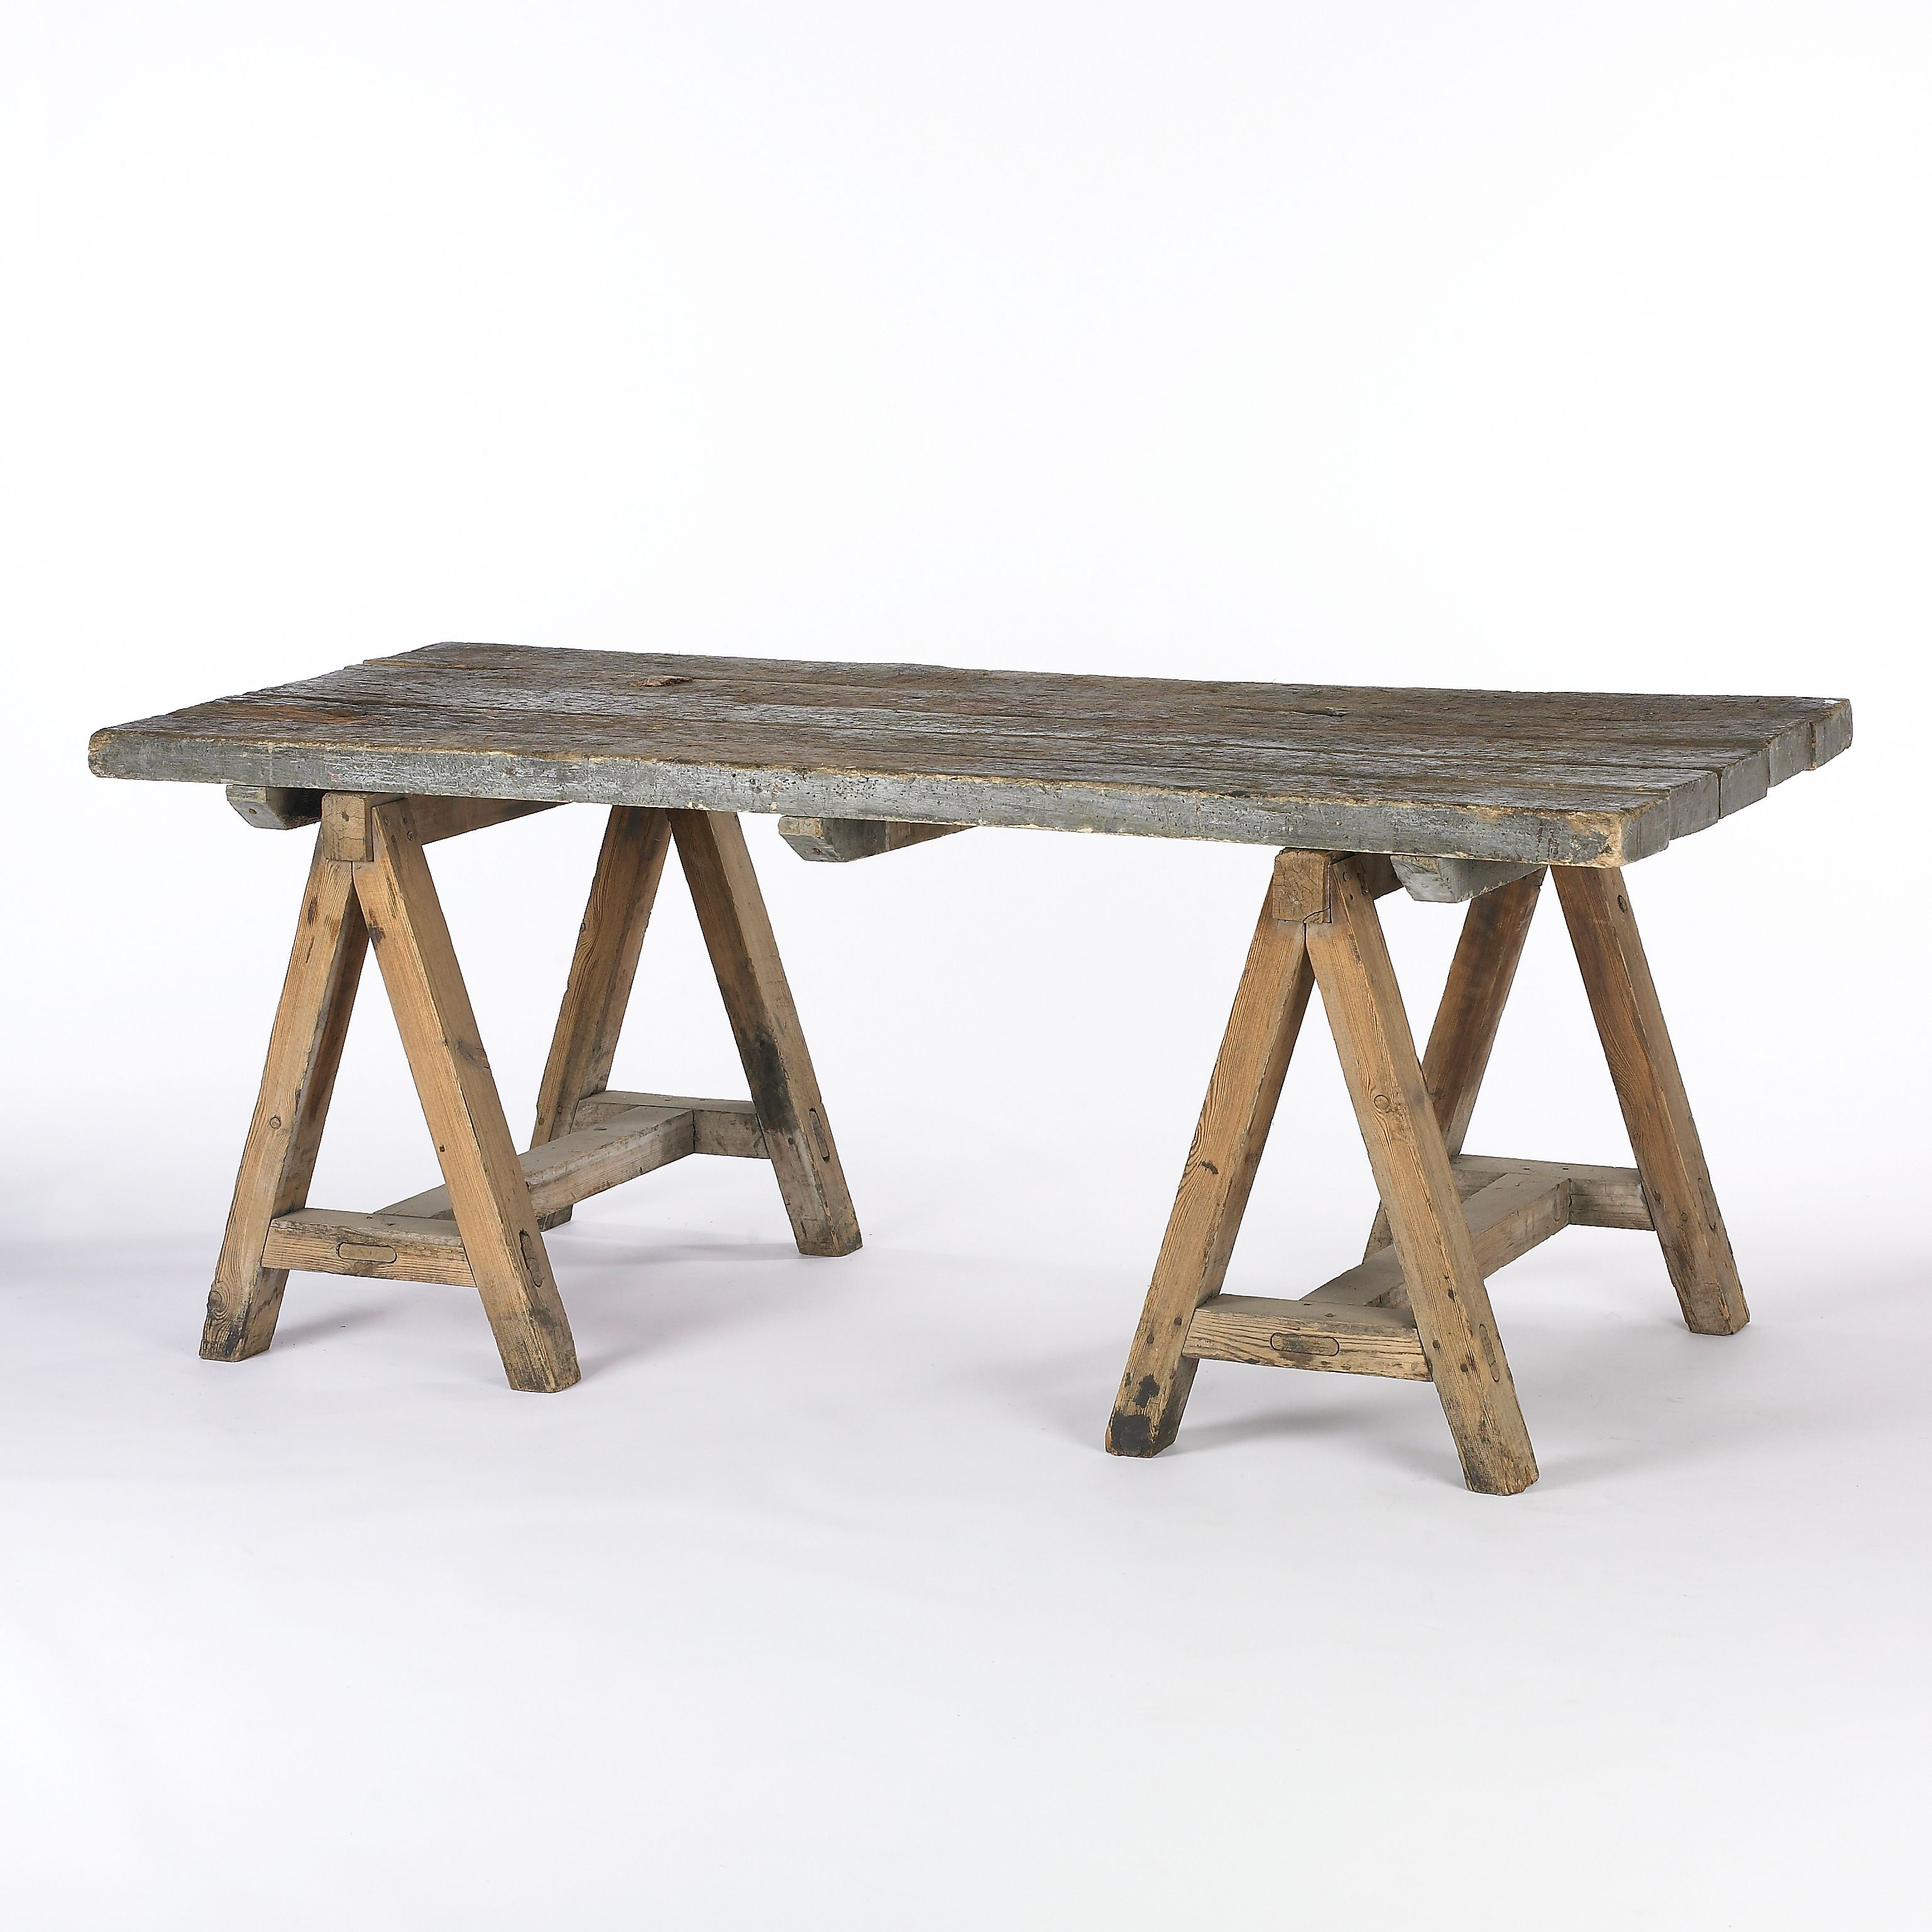 Rustic Wood Dining Table With Sawhorse Legs Wood Varies In Color